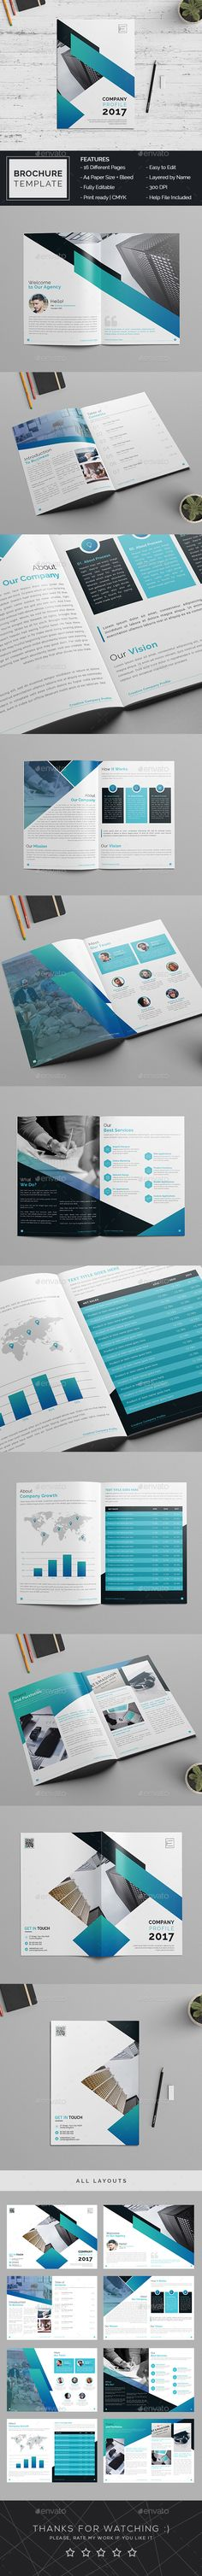 Company Profile Company profile, Business design and Psd templates - company profile templates